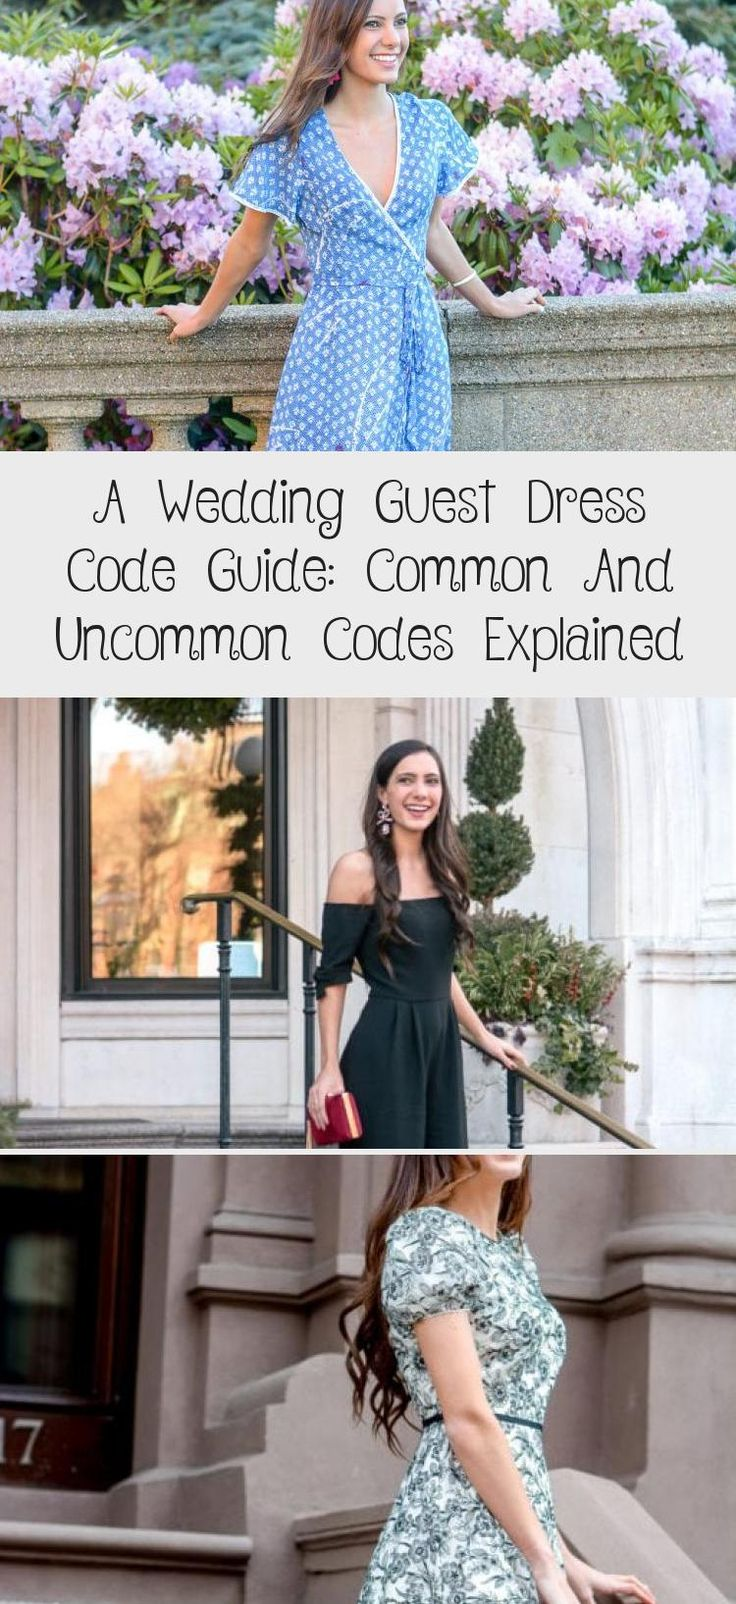 Bodycon wedding guest dress questions and answers